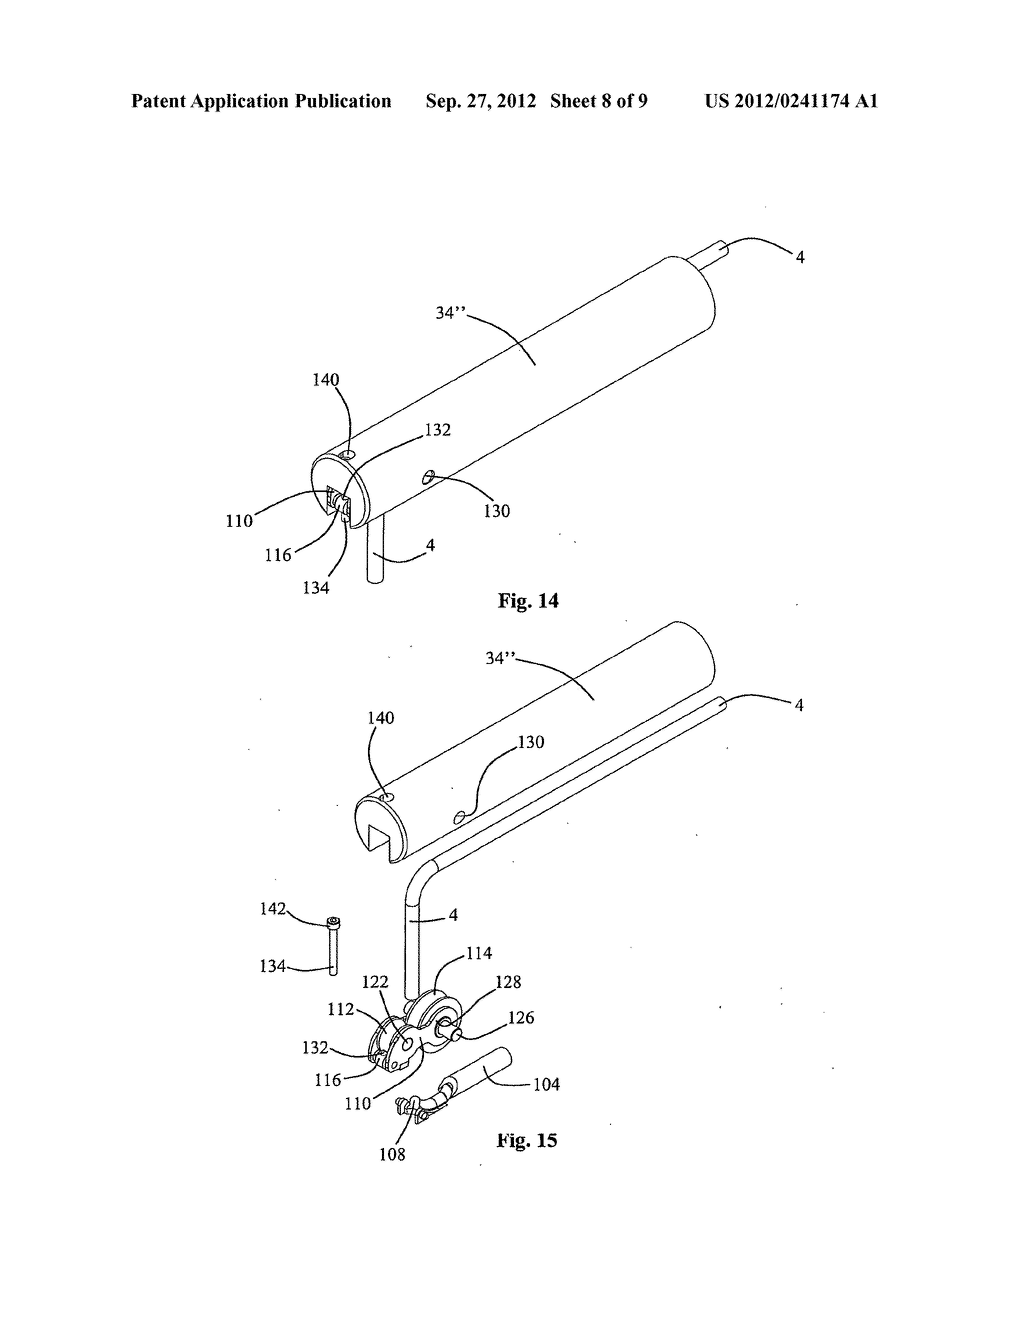 INJECTION MODULE, METHOD FOR USE FOR LATERAL INSERTION AND BENDING OF A     COILED TUBING VIA A SIDE OPENING IN A WELL - diagram, schematic, and image 09